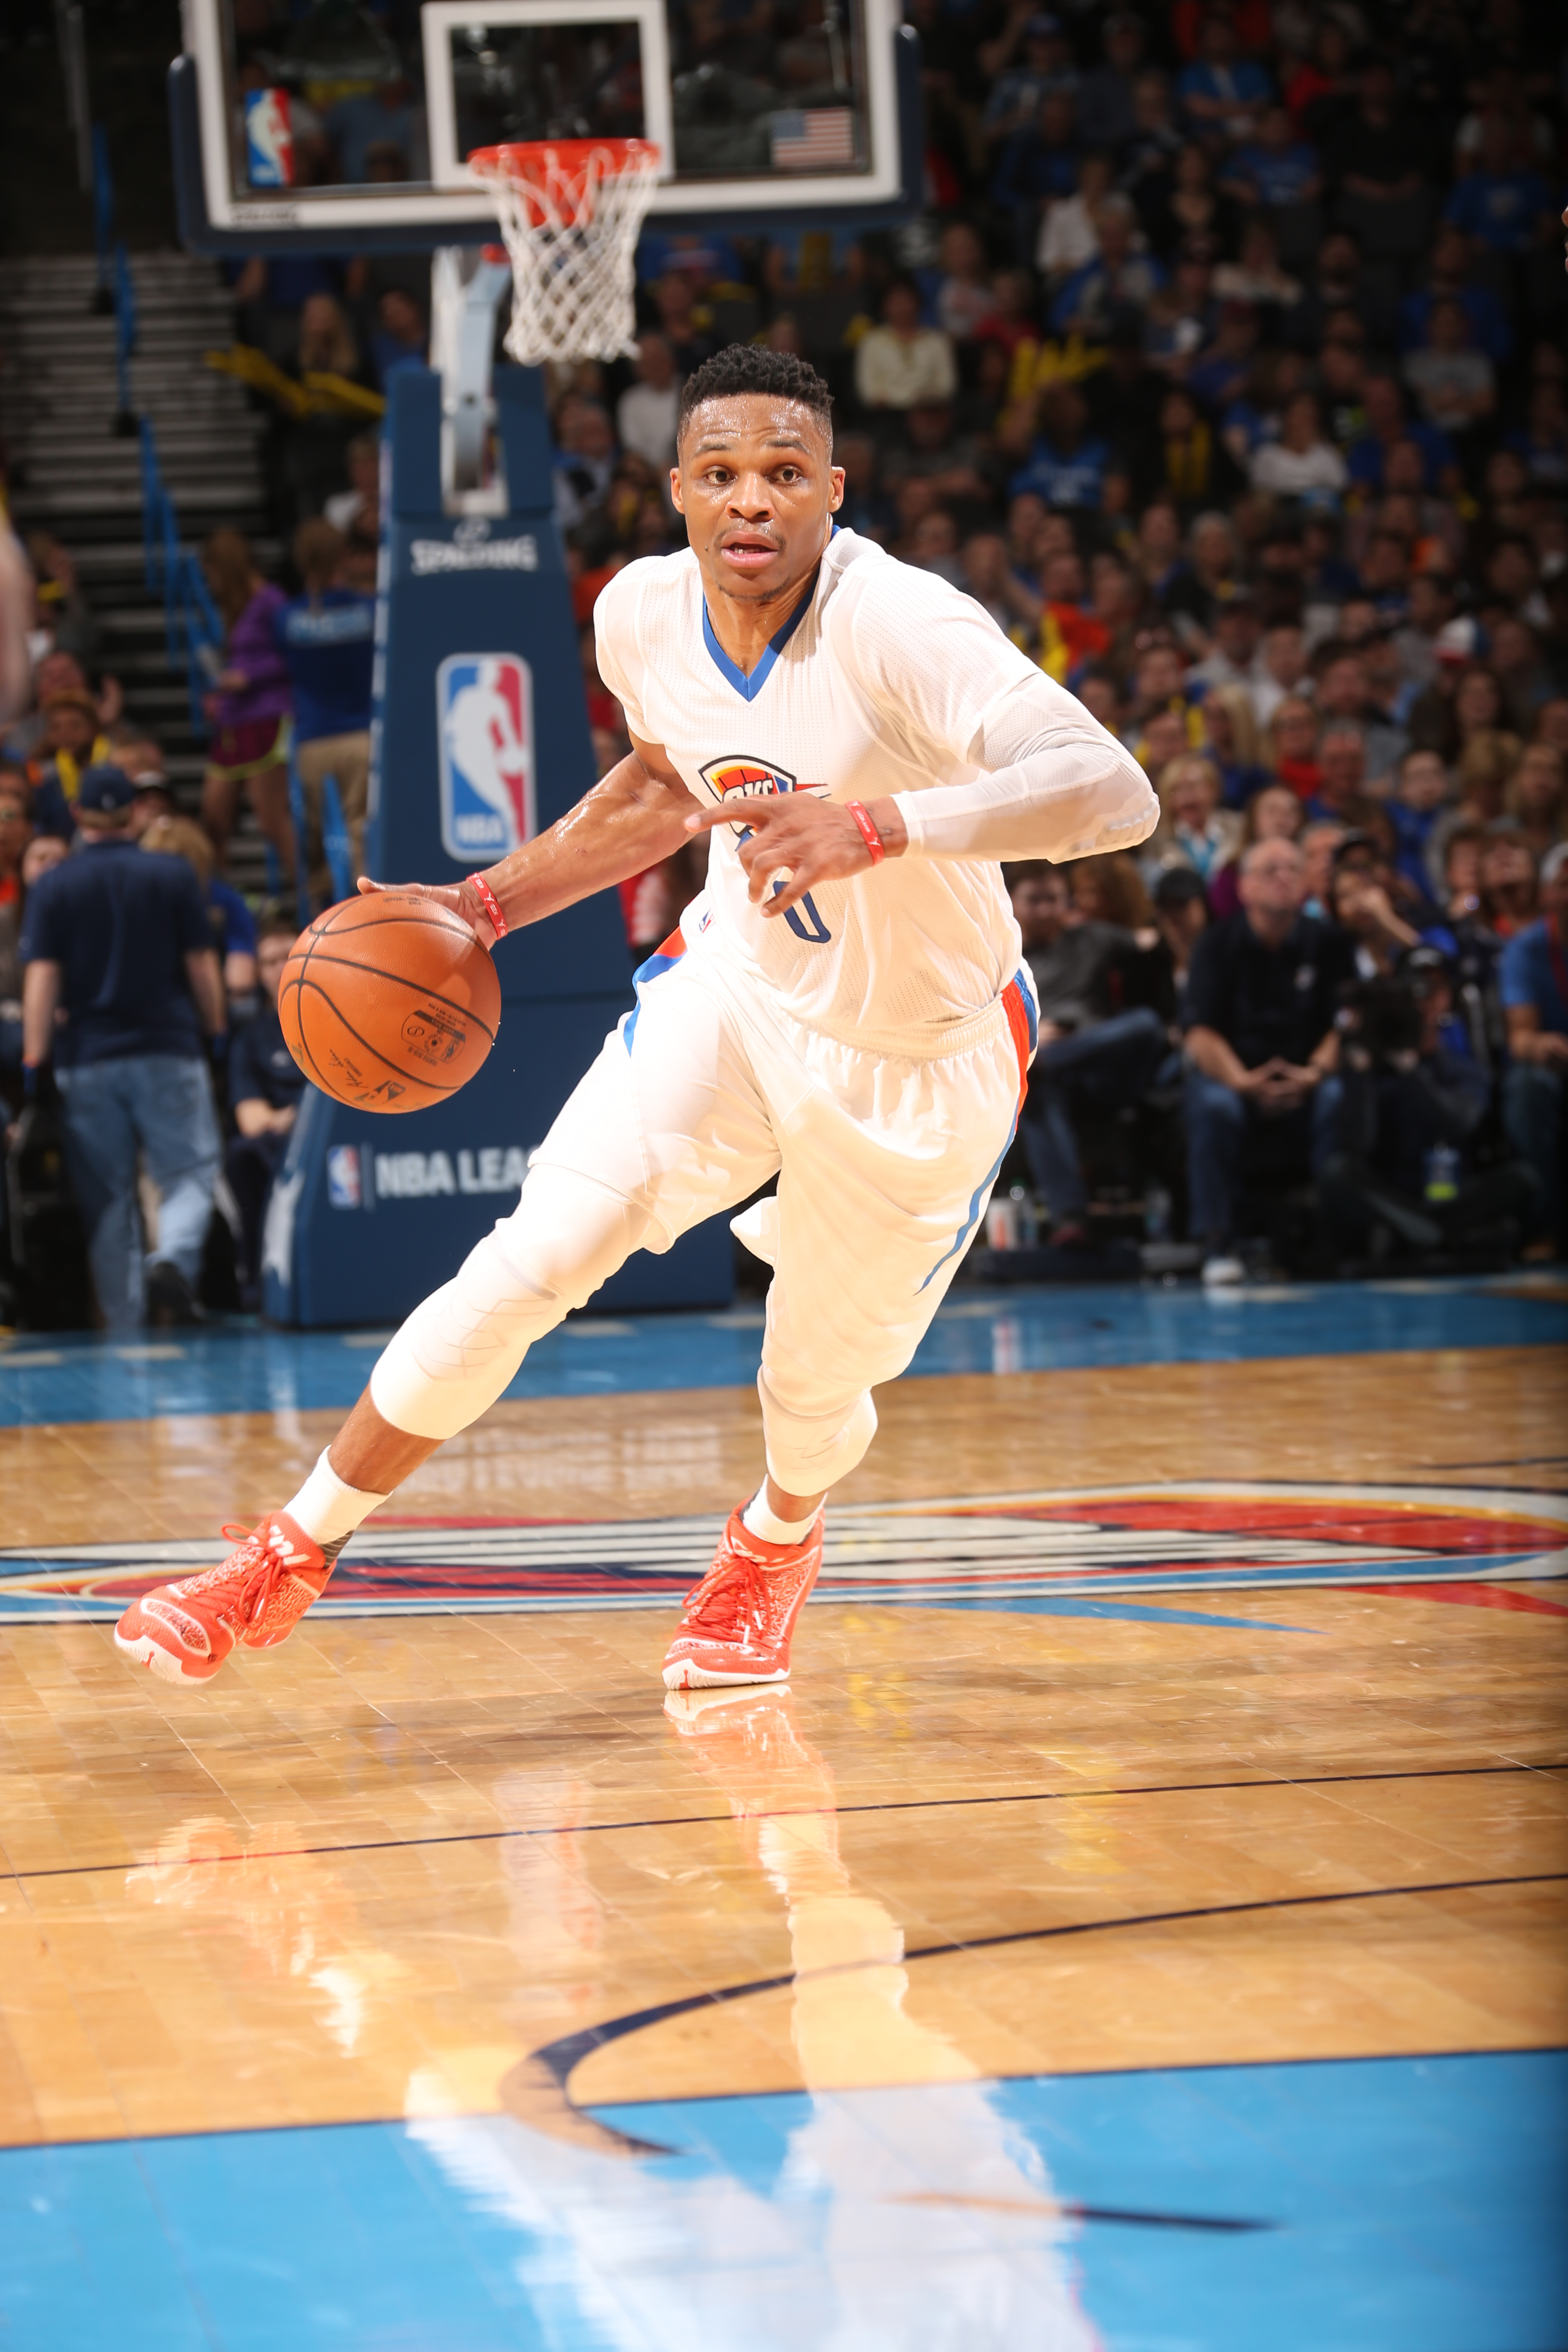 OKLAHOMA CITY, OK - MARCH 22:  Russell Westbrook #0 of the Oklahoma City Thunder drives to the basket against the Houston Rockets on March 22, 2016 at Chesapeake Energy Arena in Oklahoma City, Oklahoma. (Photo by Layne Murdoch/NBAE via Getty Images)